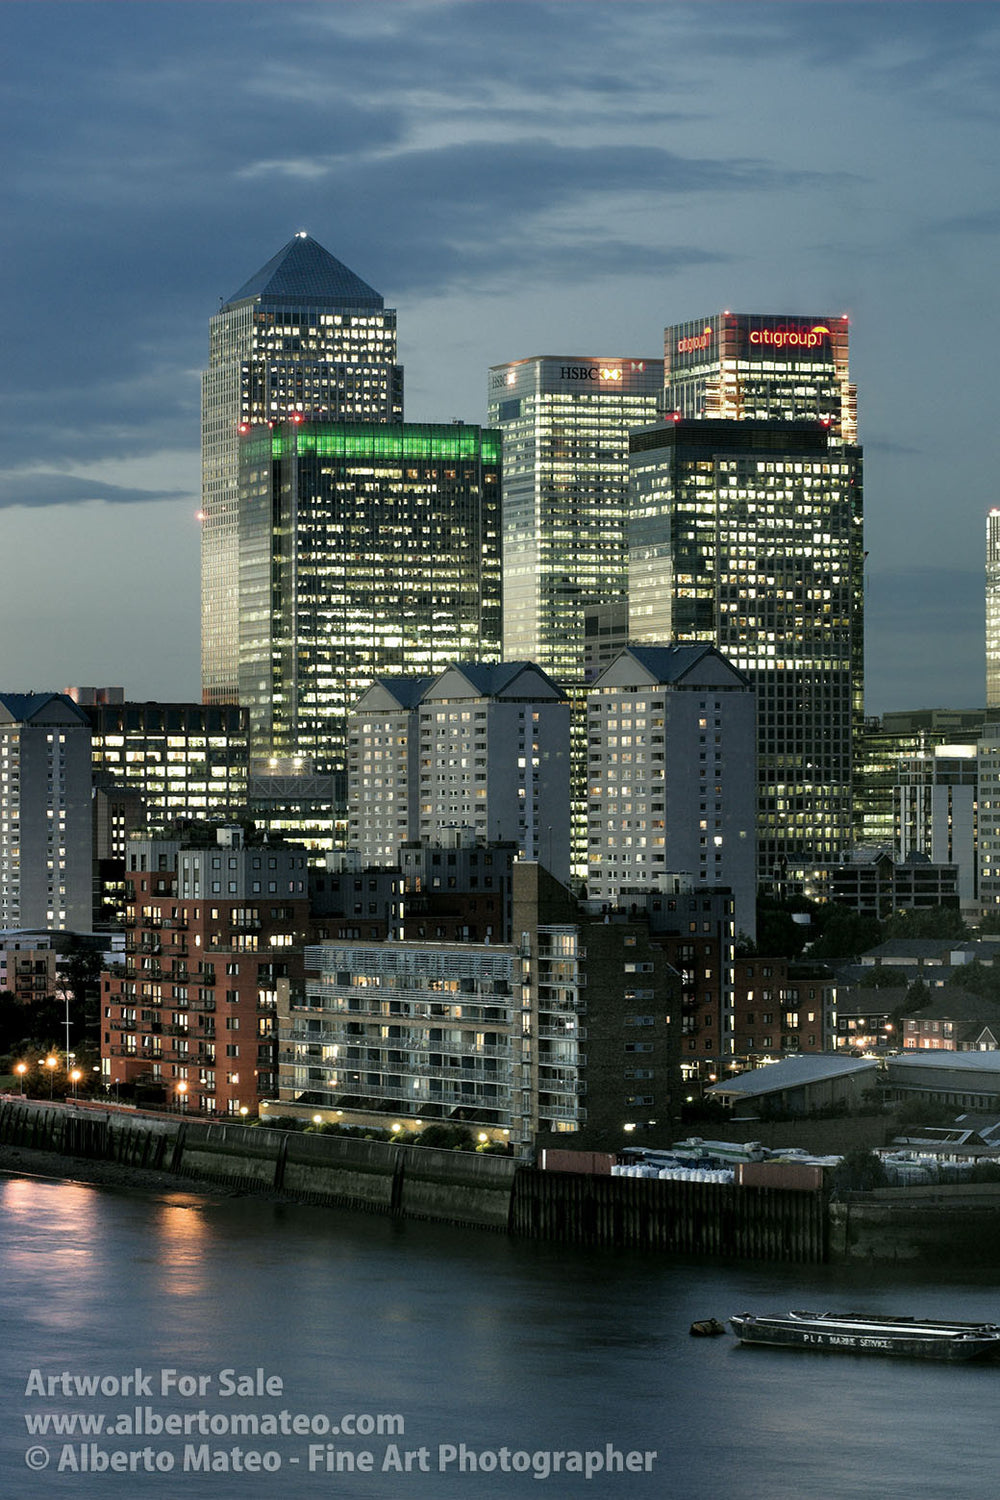 Canary Wharf at dusk, Thames River, London.